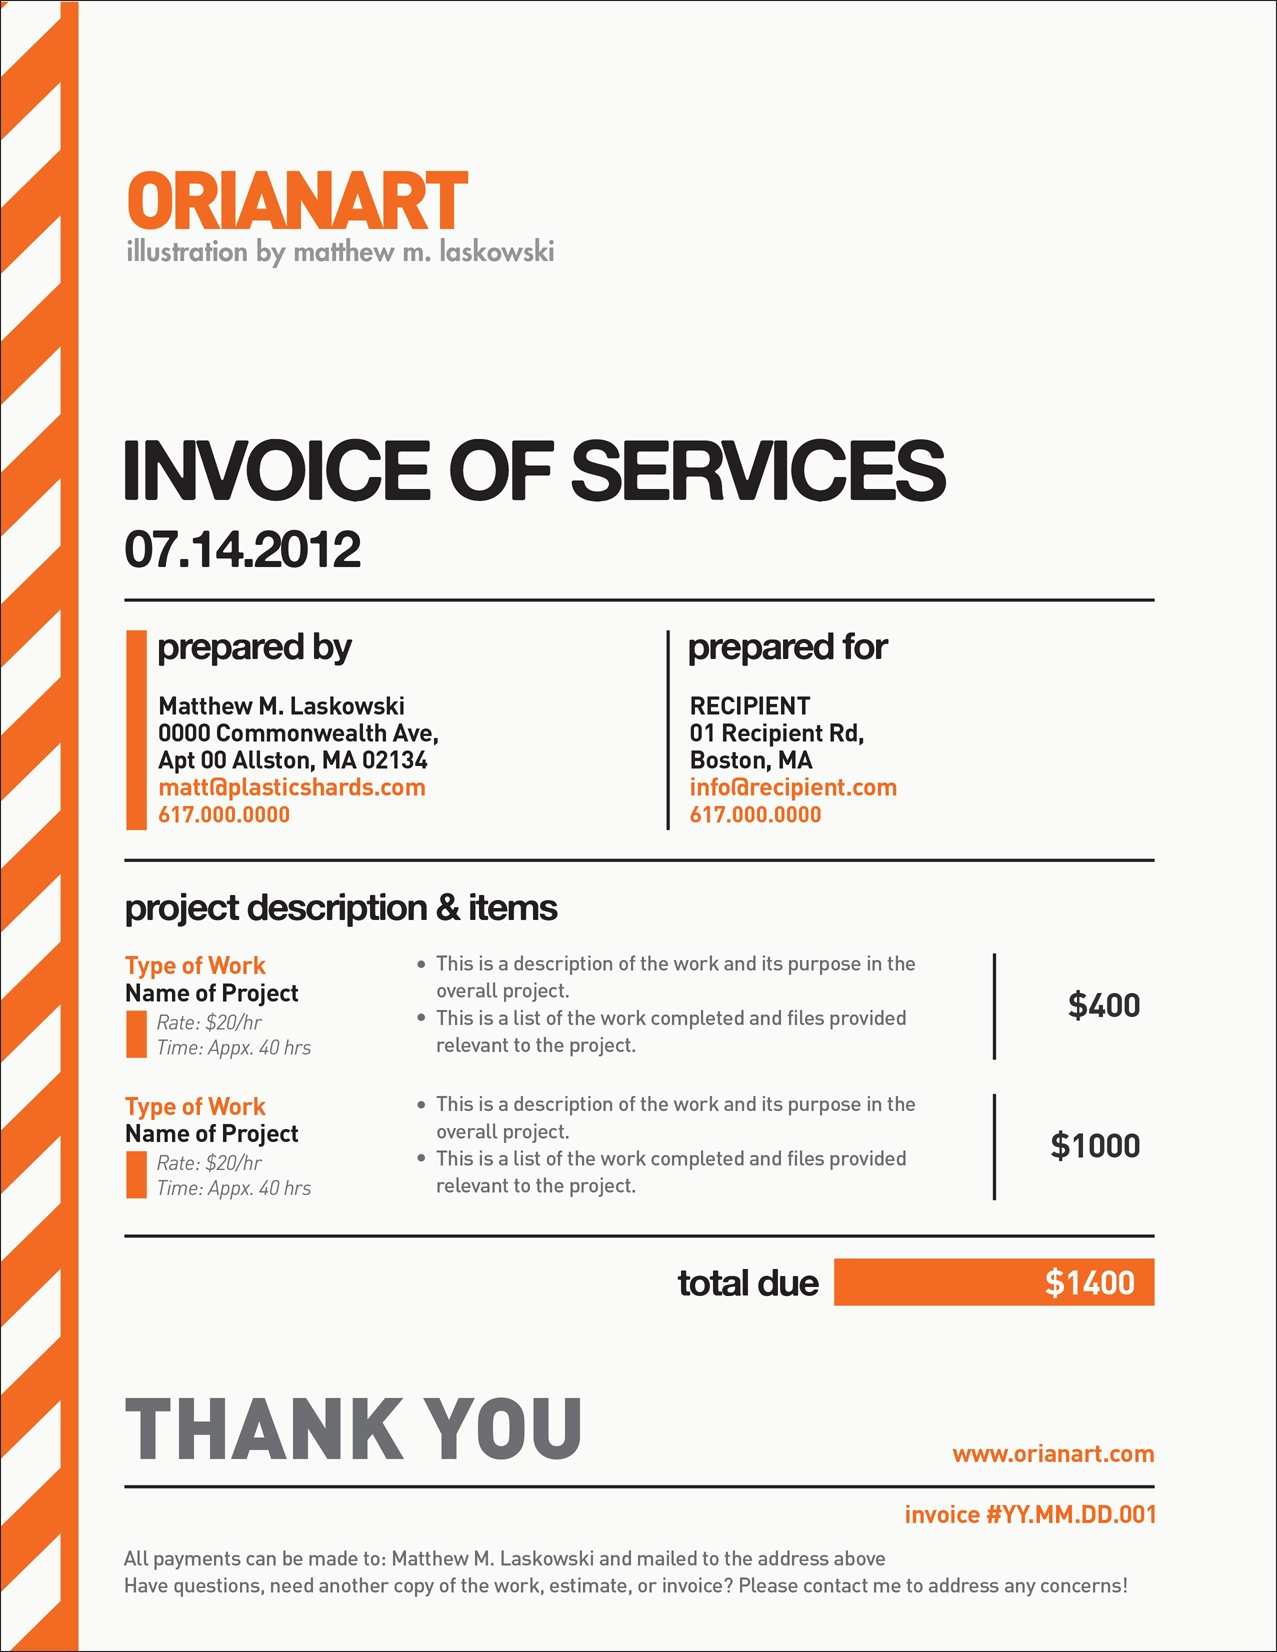 cool invoice designs 1000 images about designinvoices on pinterest invoice design 1277 X 1652